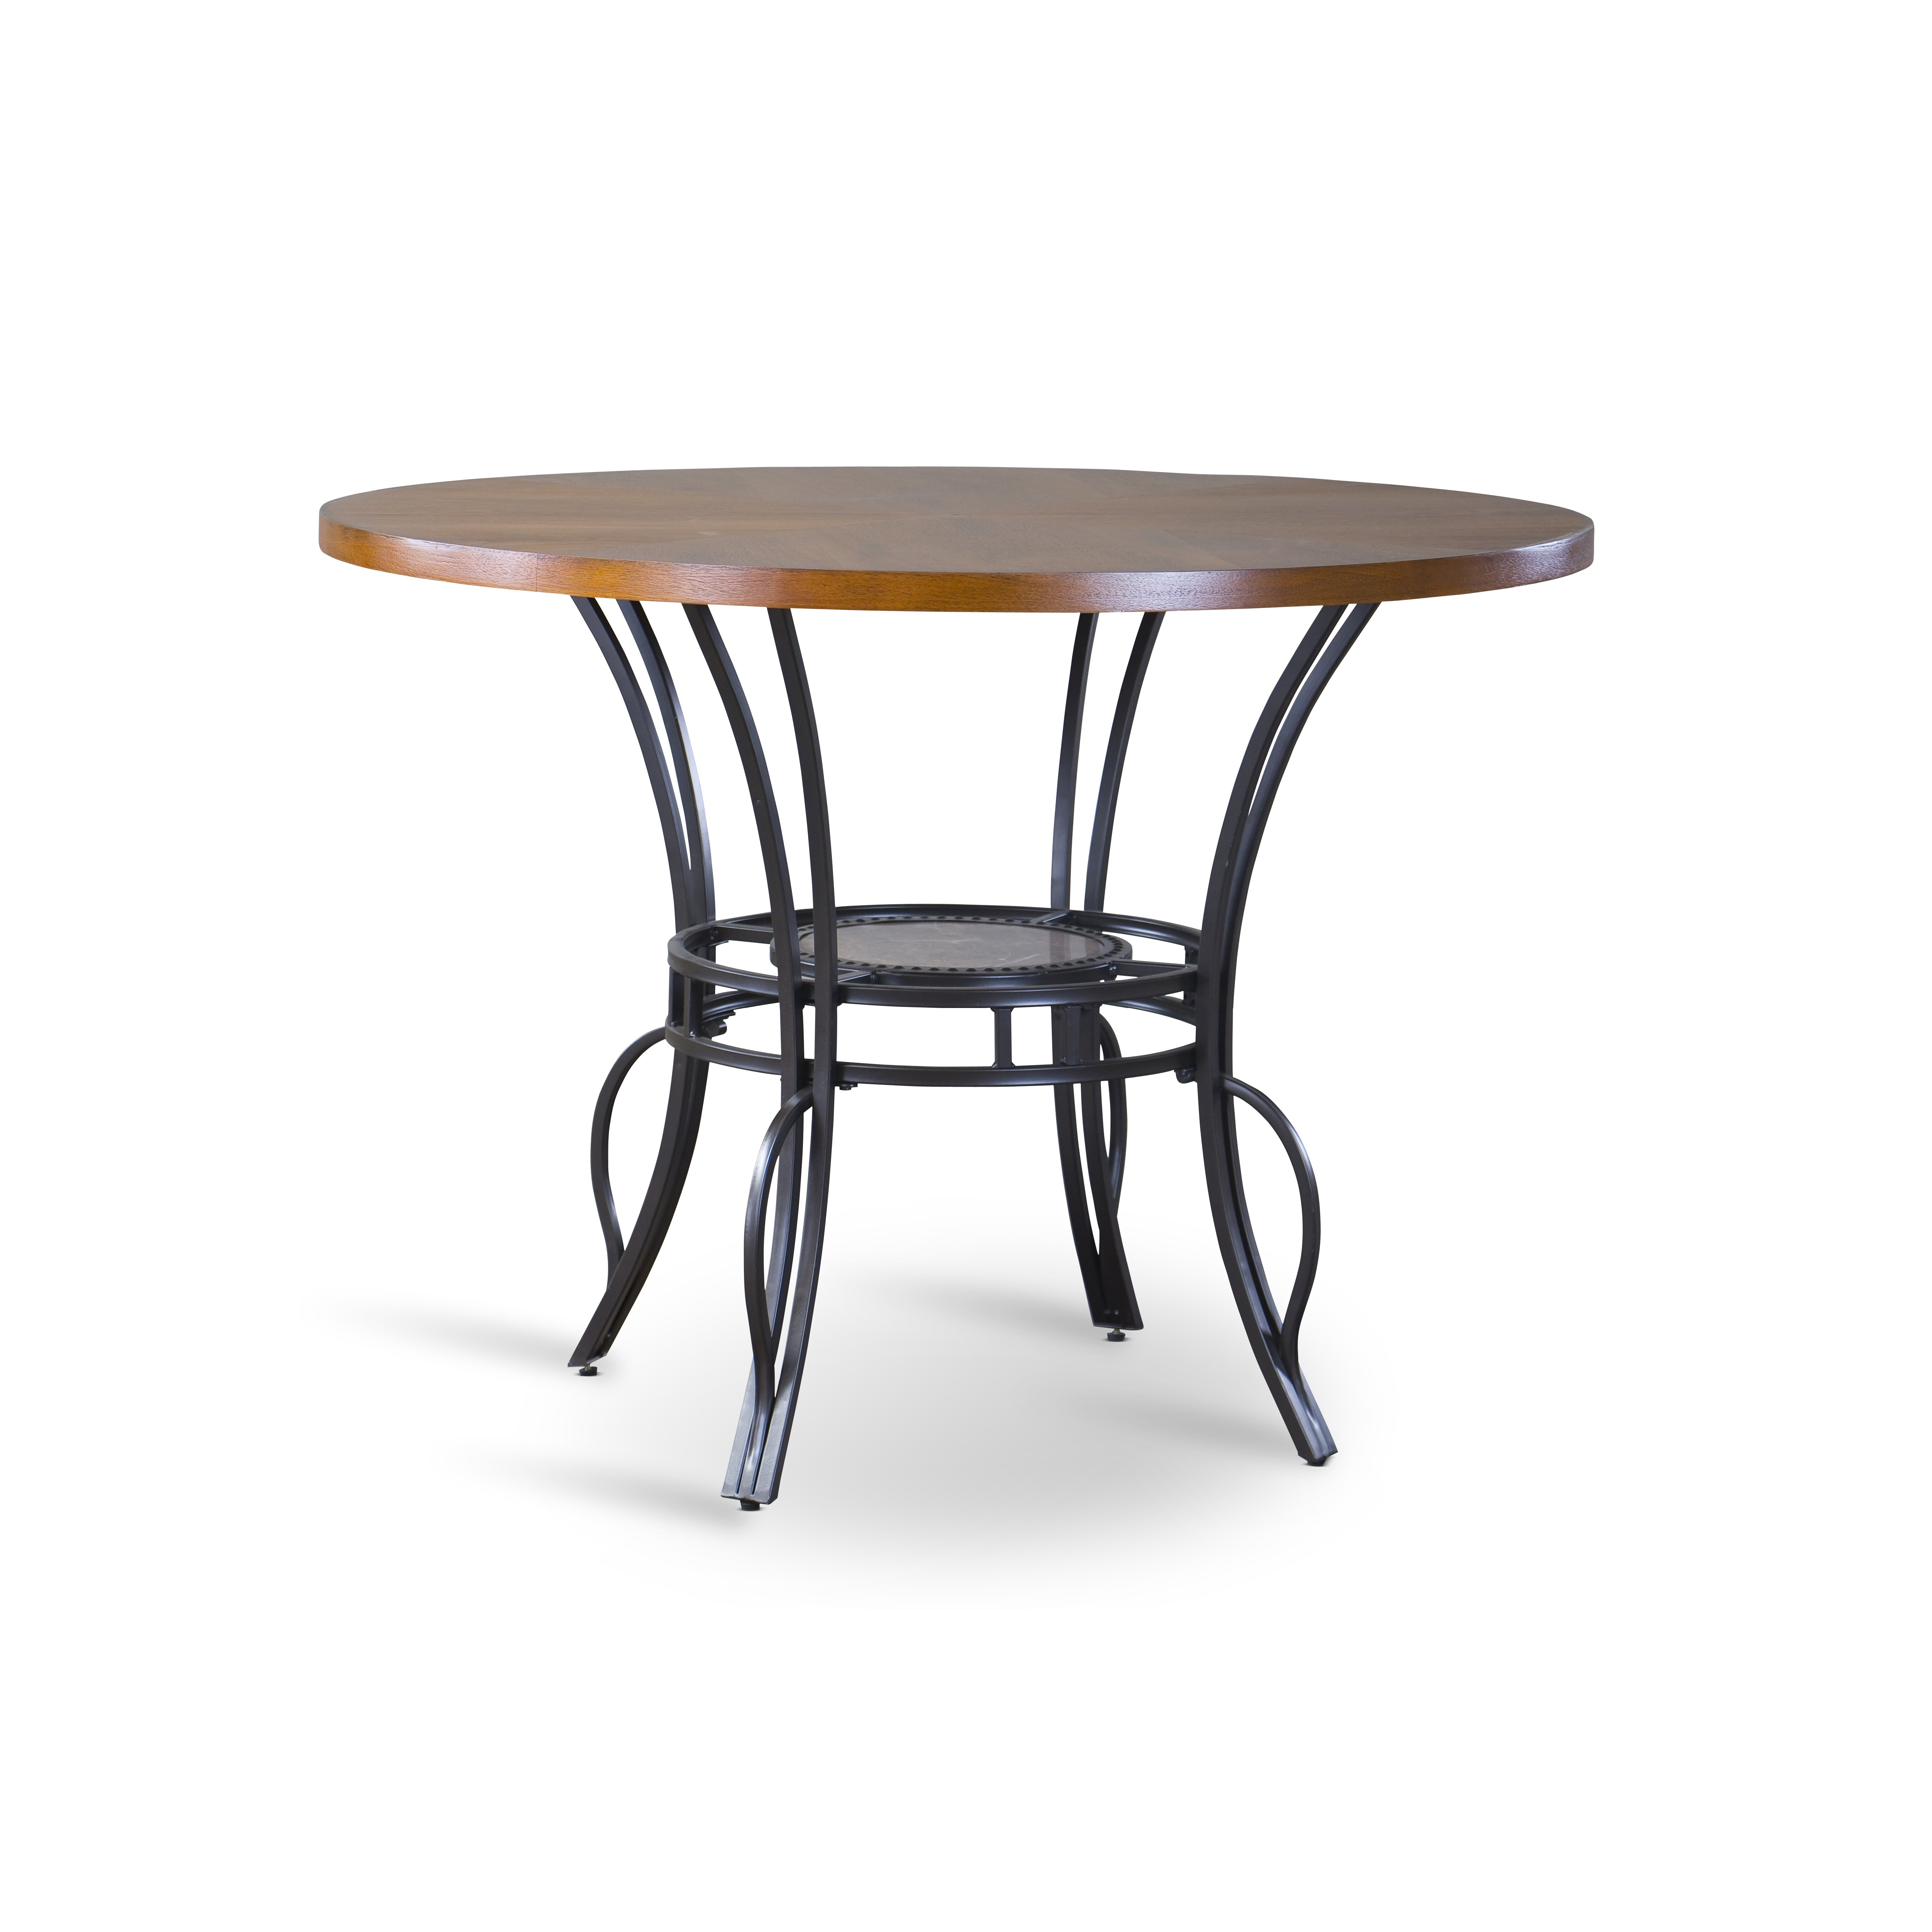 Wholesale Dining Tables: Wholesale Interiors Verona Dining Table & Reviews